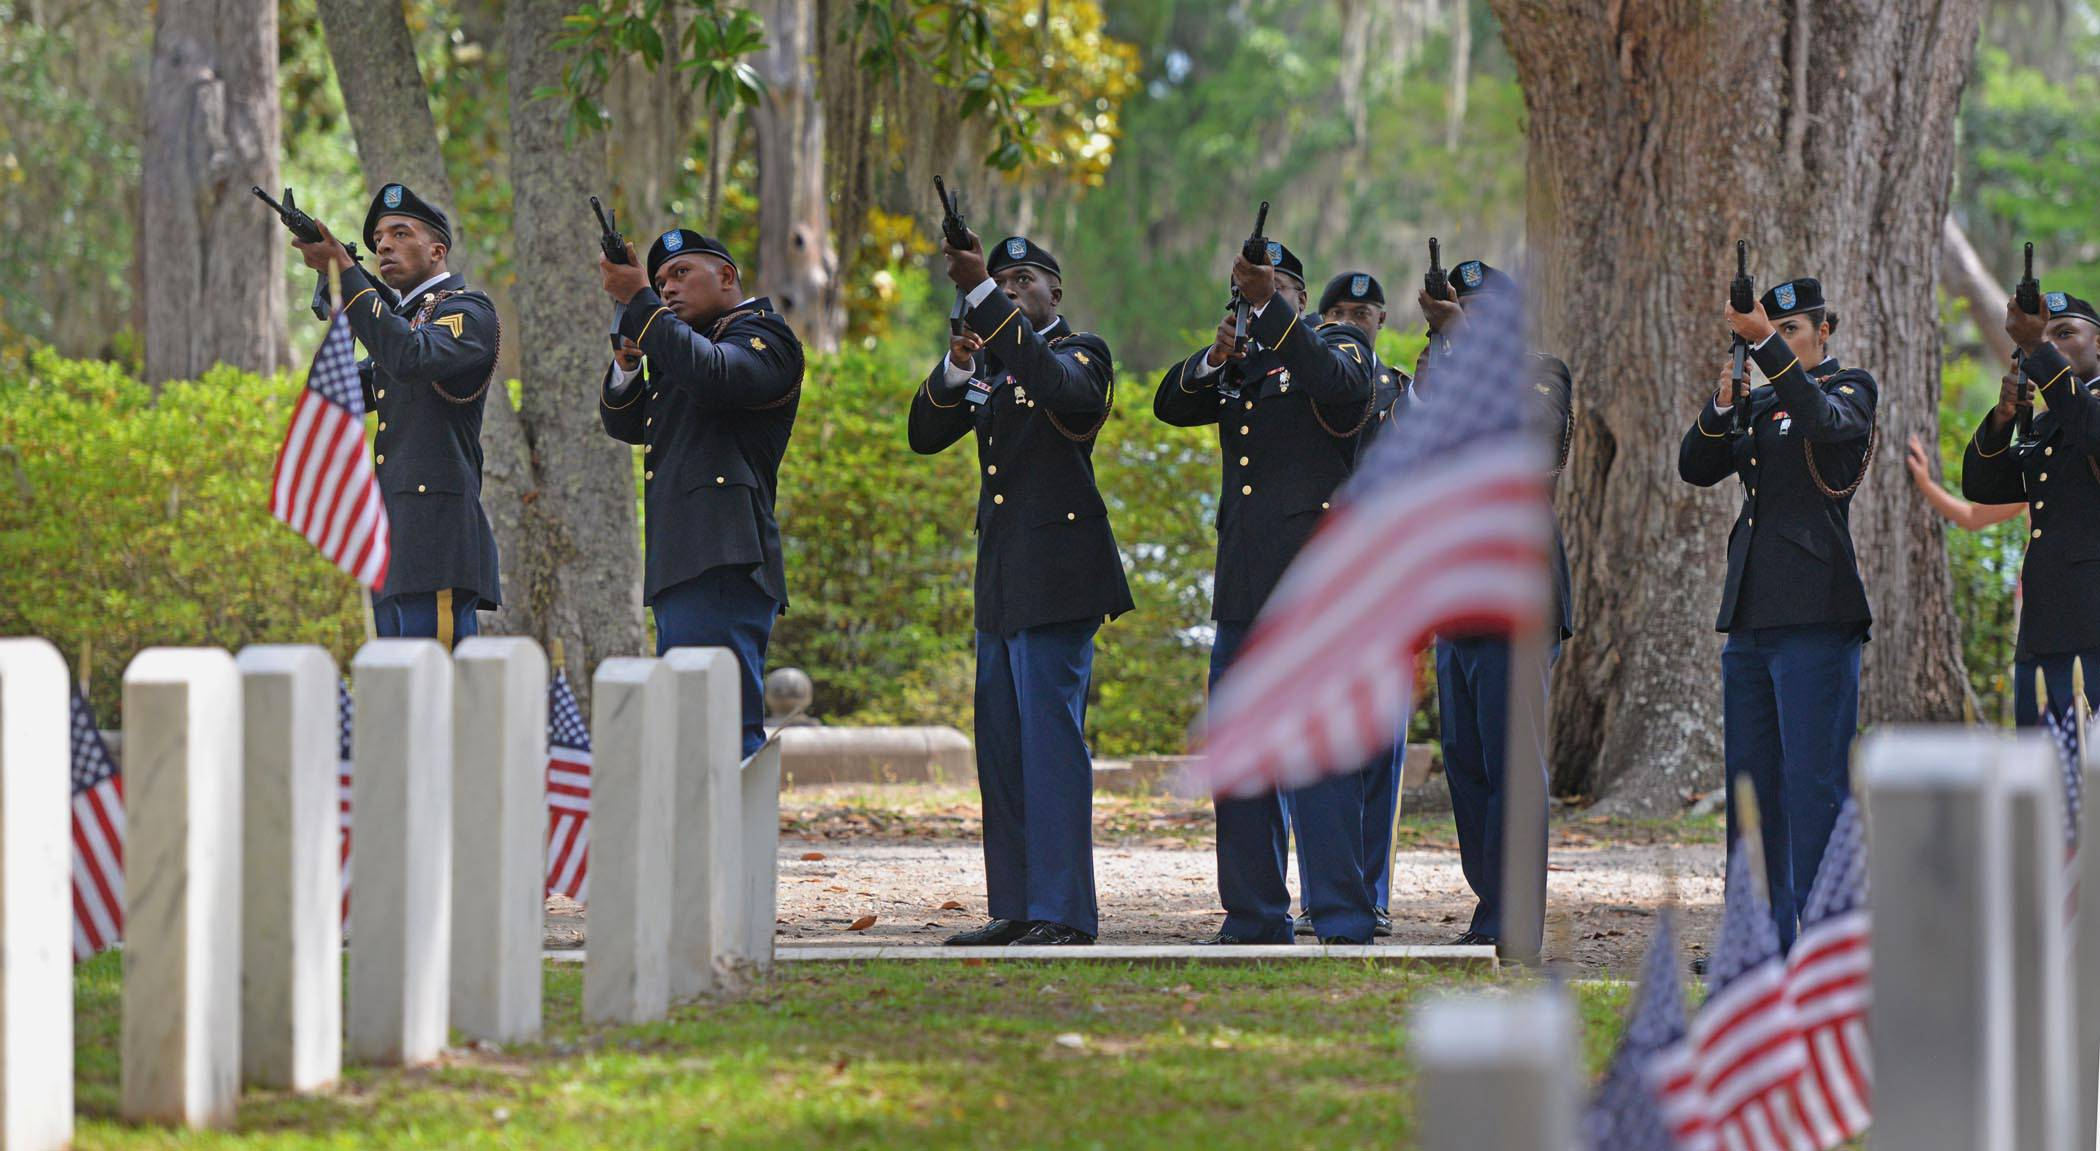 Soldiers from the 3rd Infantry Division fire three volleys Monday, May 26, 2014, during a Memorial Day ceremony at Bonaventure Cemetery in Savannah, Ga.